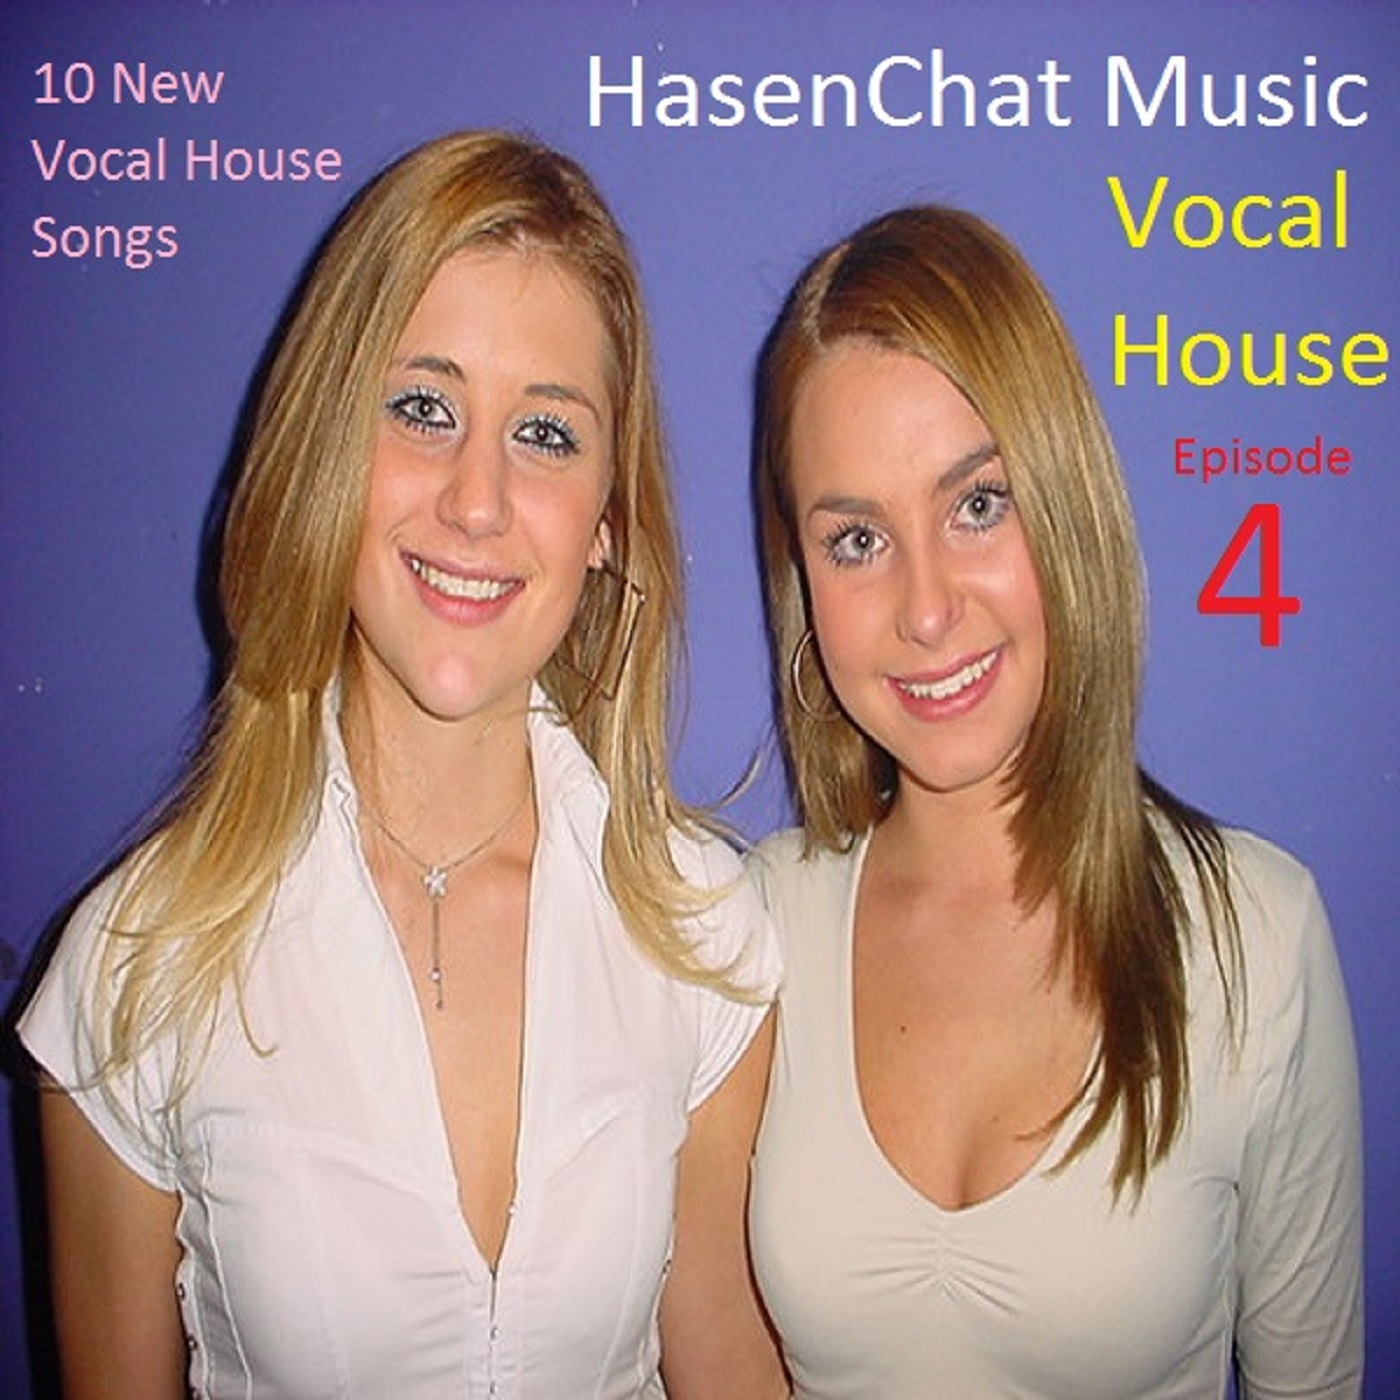 1400x1400 Vocal House Episode 4 Cover